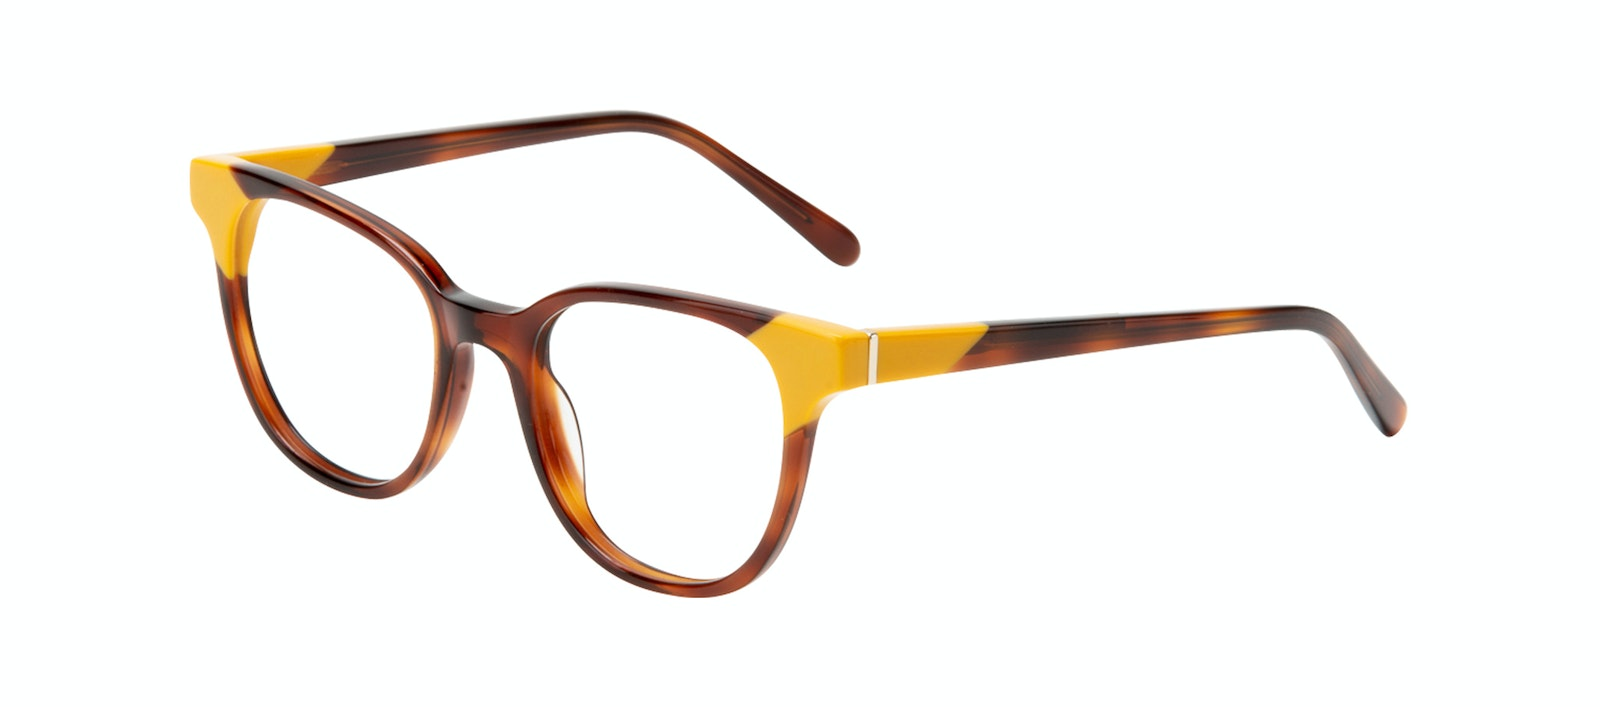 Affordable Fashion Glasses Square Eyeglasses Women Lively Yellow Pop Tilt